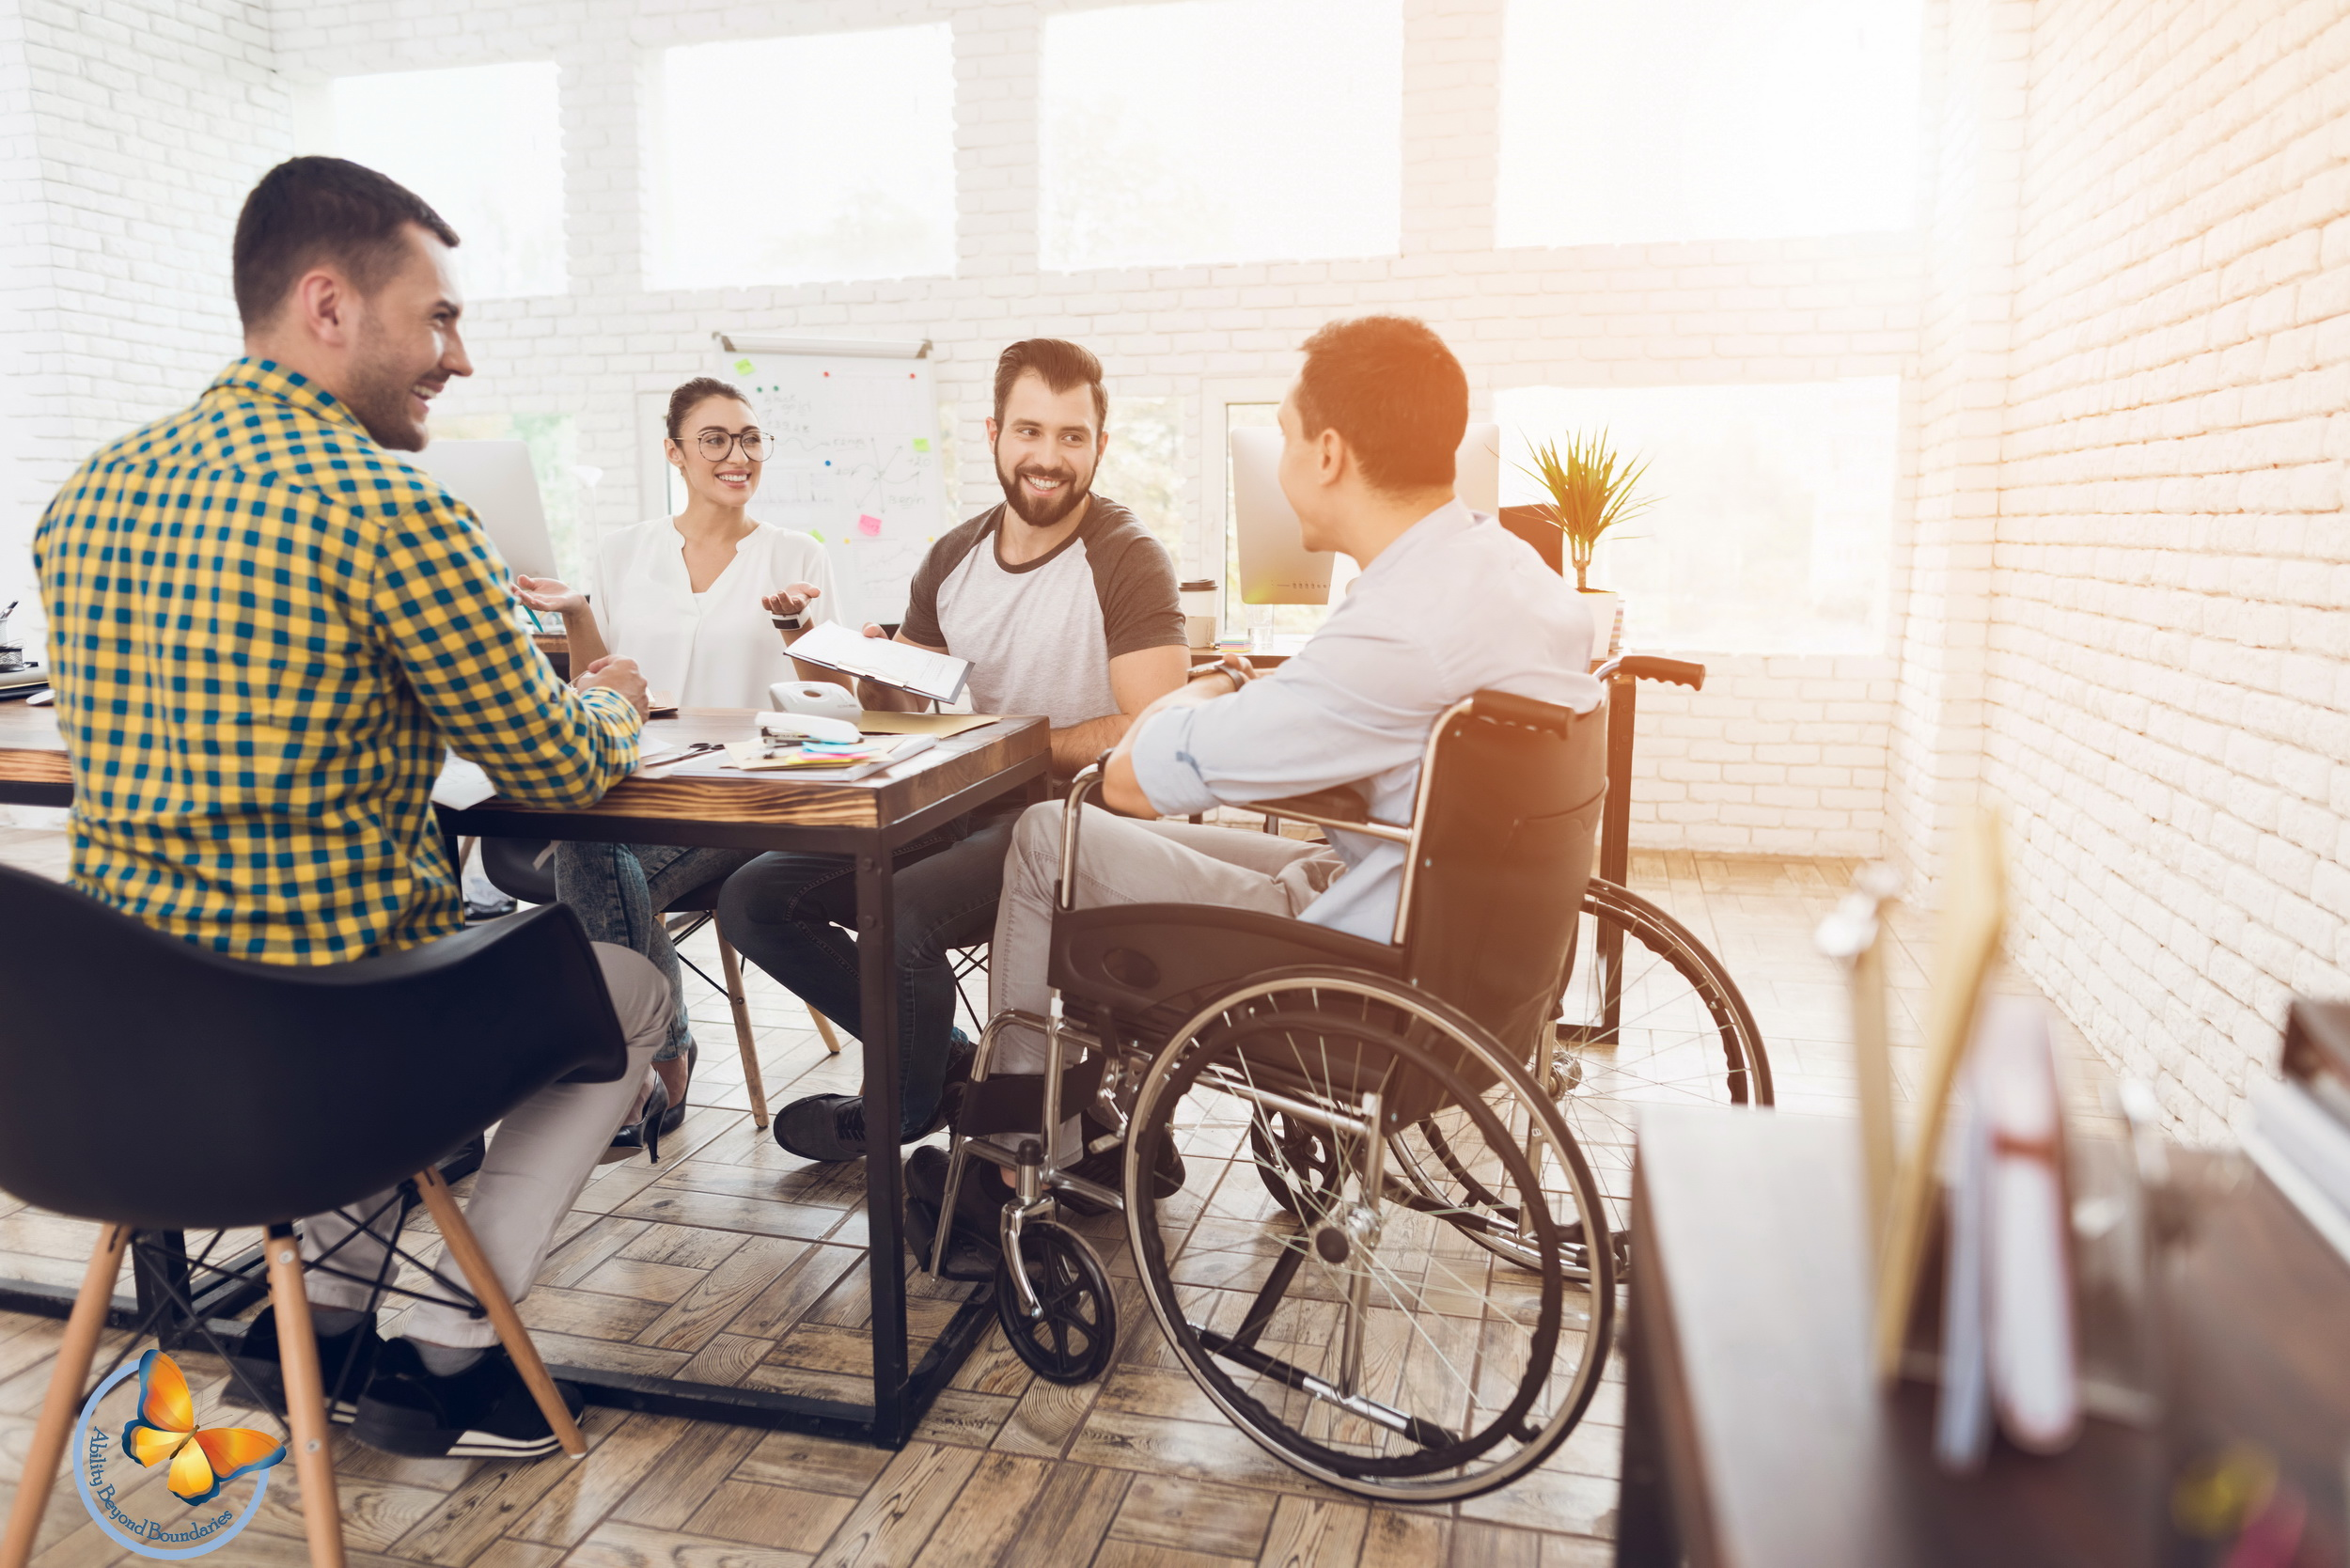 A smiling man sitting in a Wheelchair welcomes his colleagues in a meeting